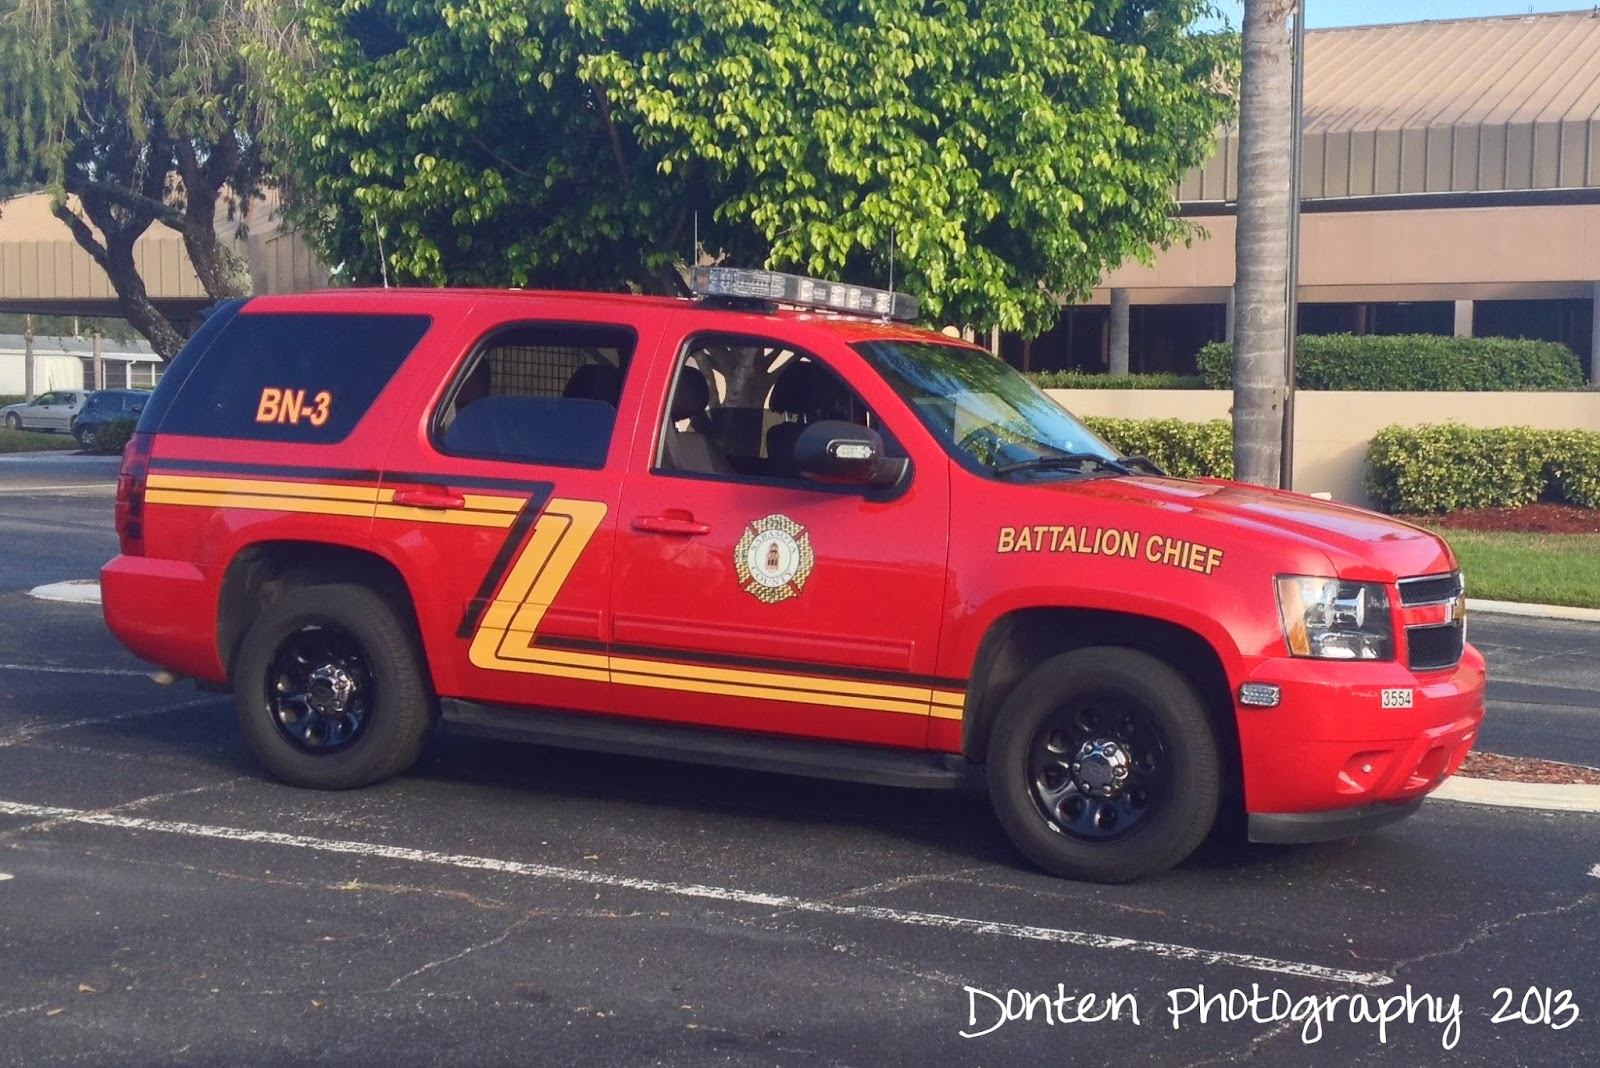 Sarasota County Fire Department (Battalion 3)